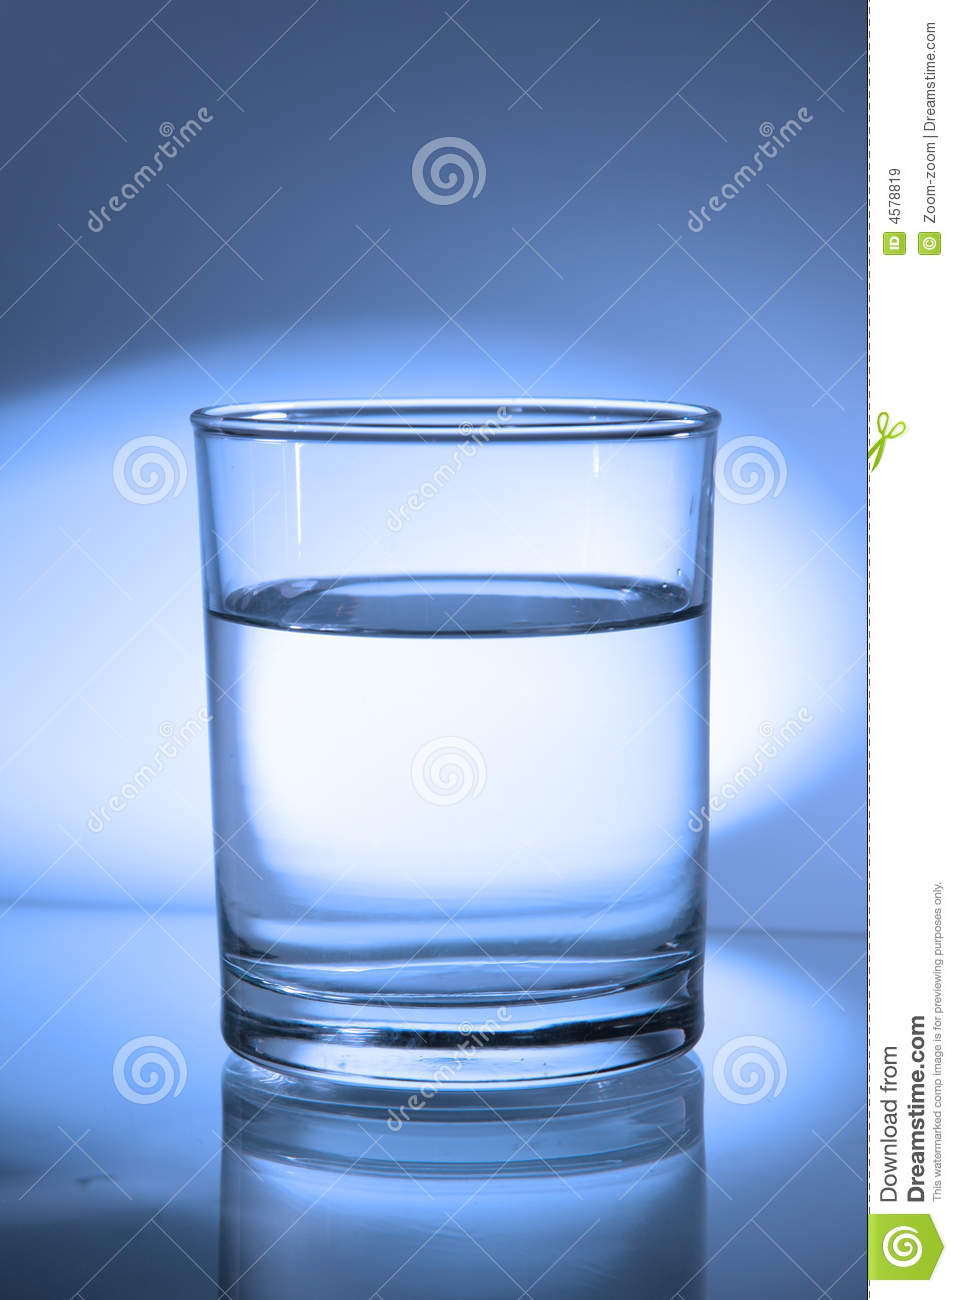 Glass of water royalty free stock images image 4578819 for Water glass images